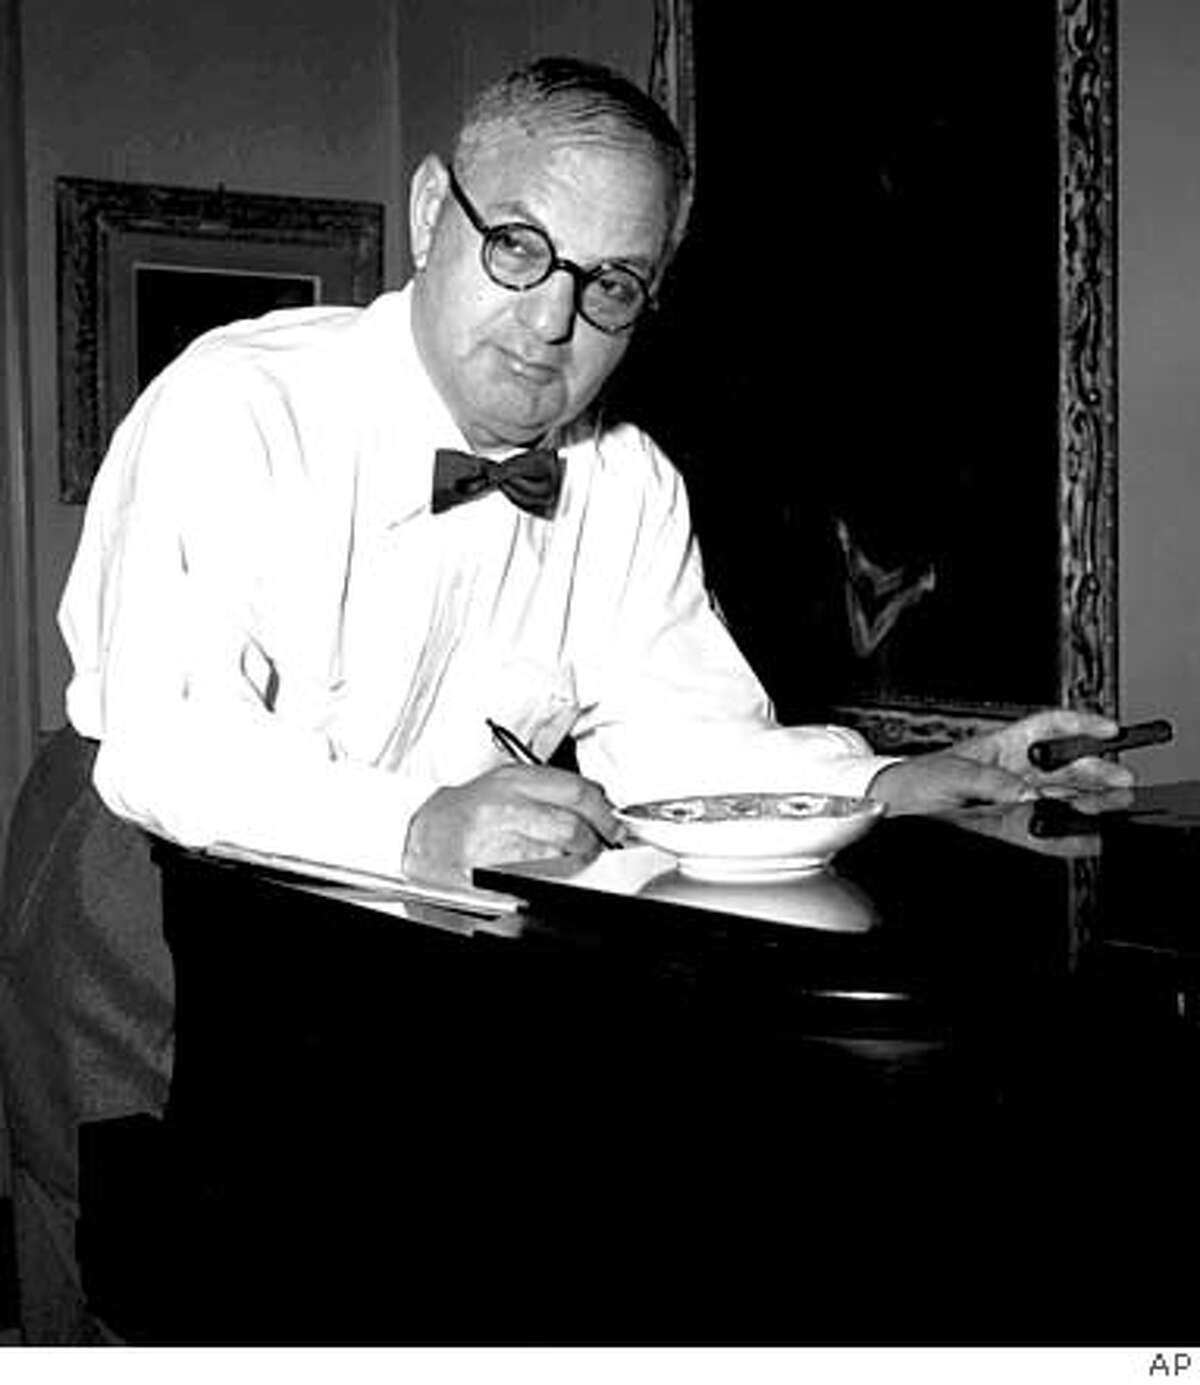 Ira Gershwin, shown at his Beverly Hills, Ca. home in this never-published 1954 photo released by the Gershwin family Wednesday, Nov. 27, 1996, would have turned 100 on December 6, 1996. A special concert,